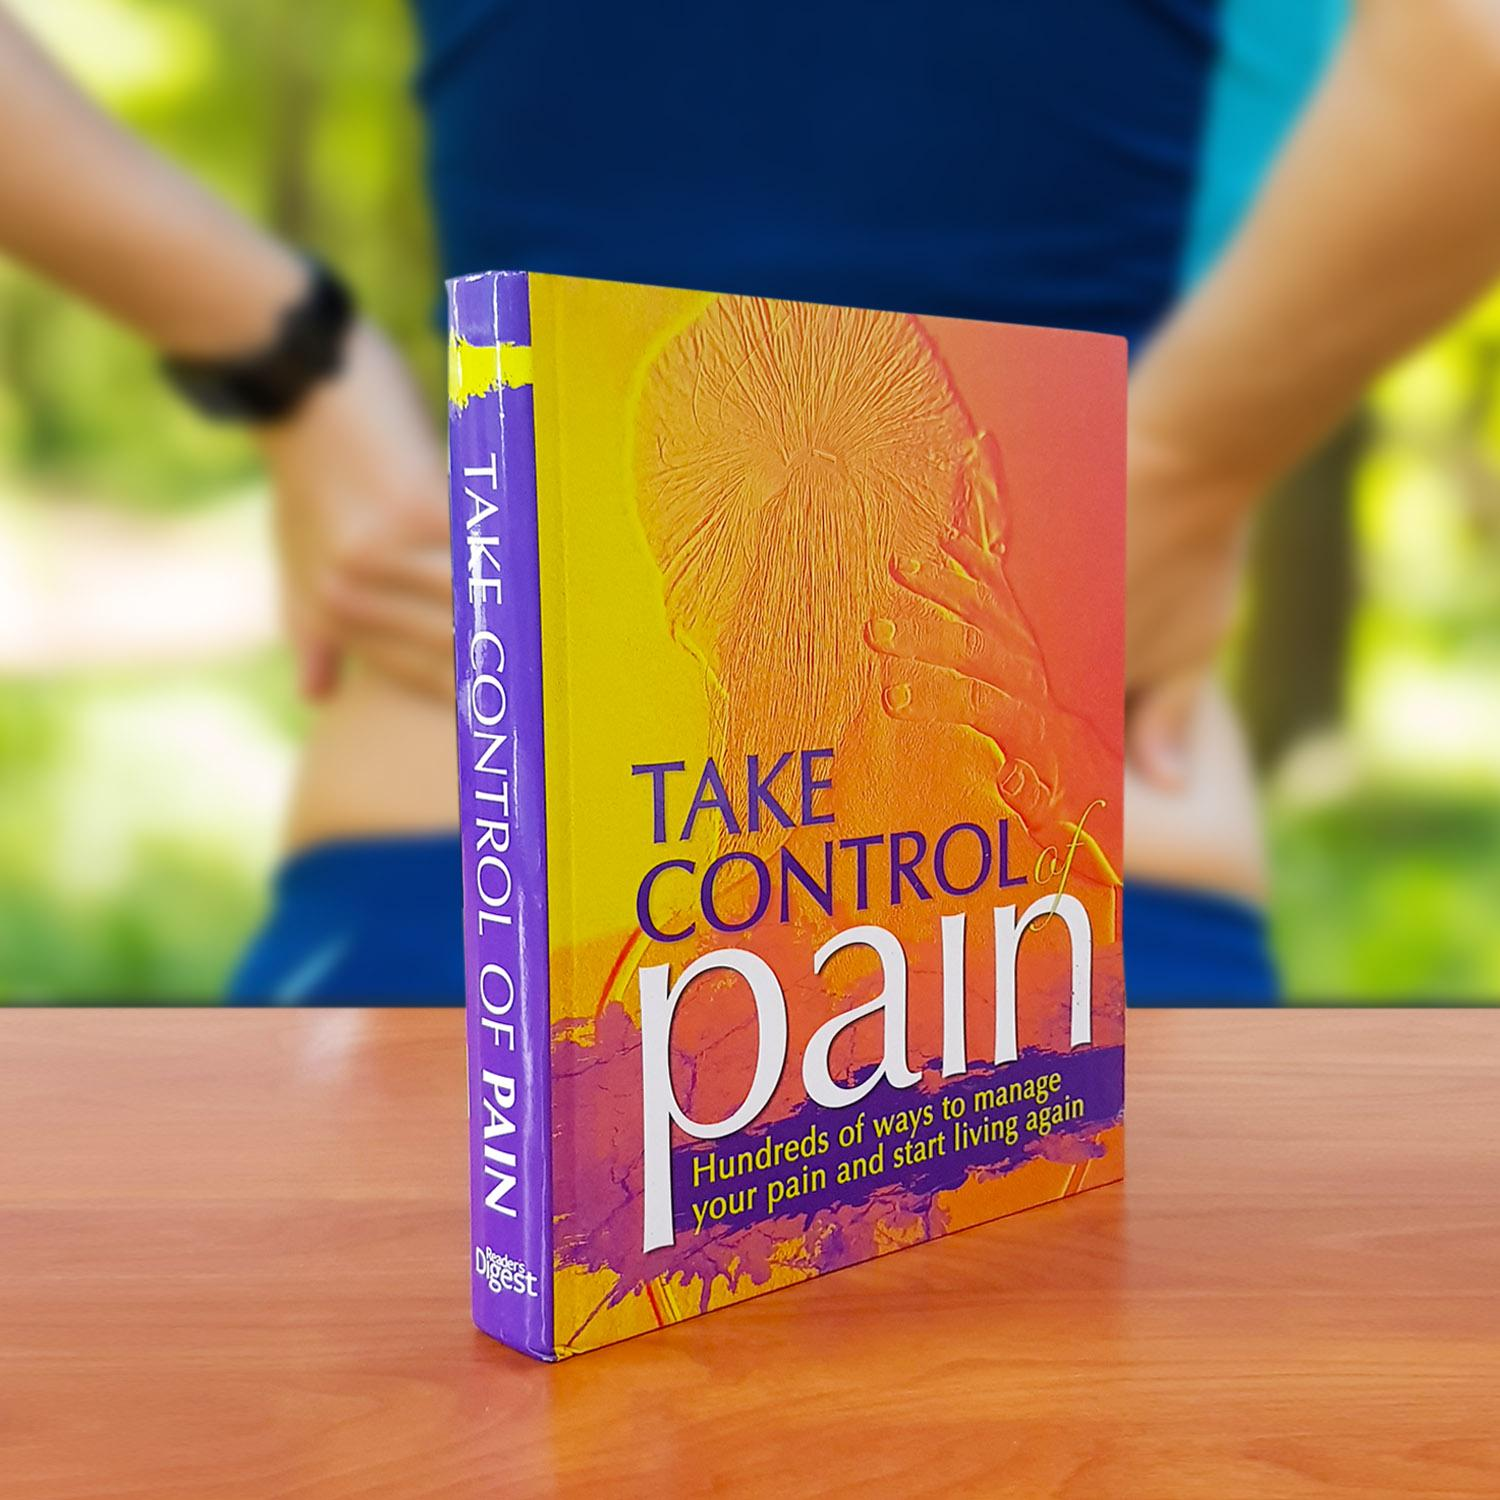 Take Control Of Pain: Hundreds Of Ways To Manage Your Pain And Start Living Again By Ehdi Online Shop.